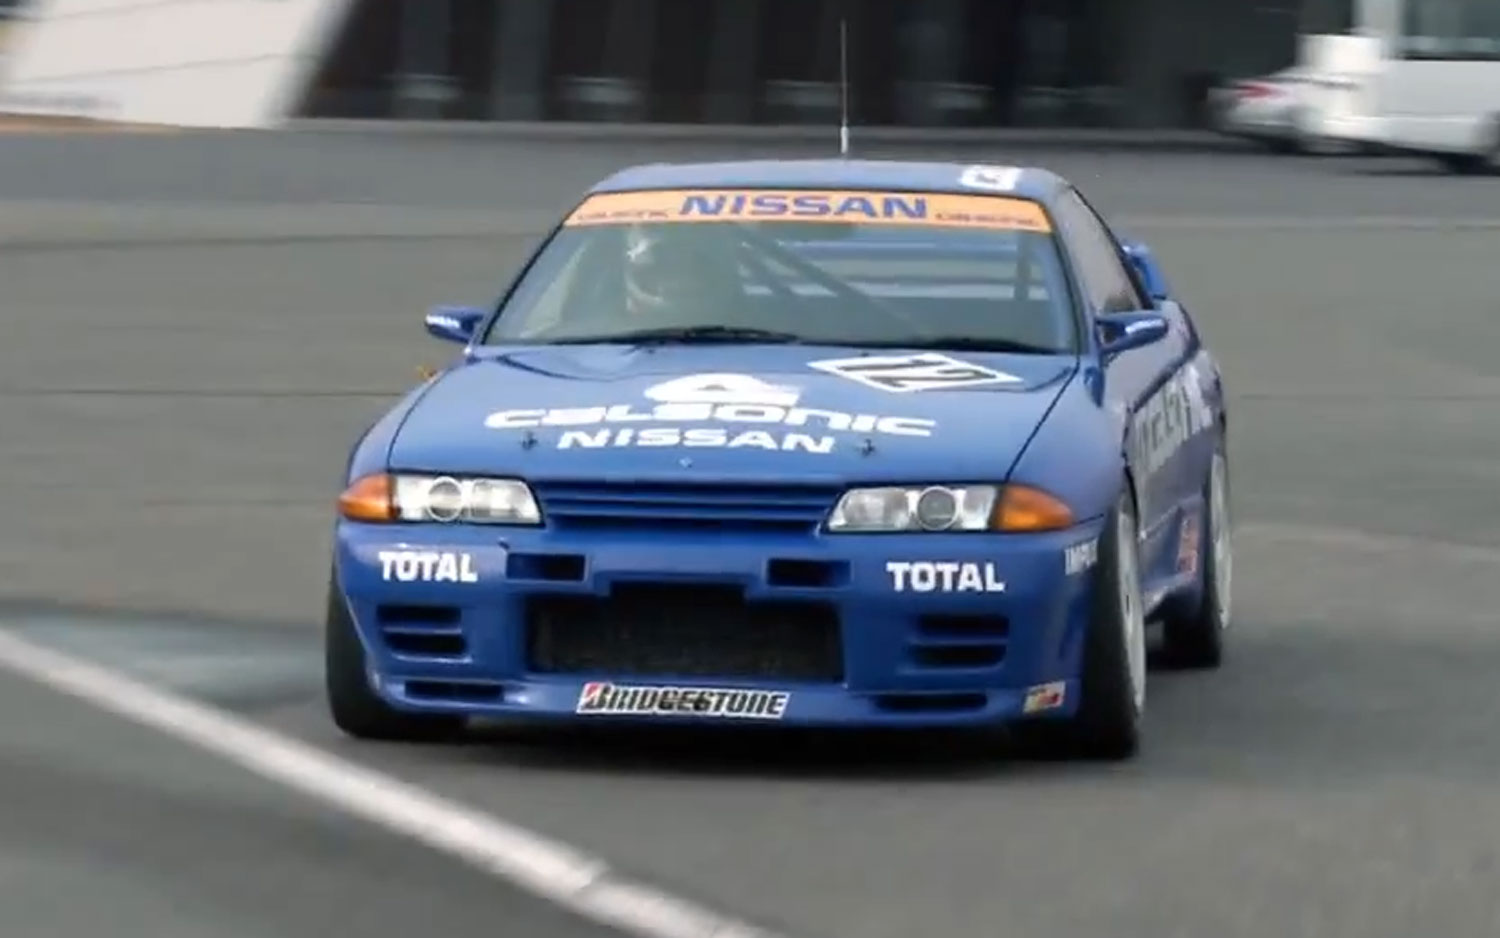 Feature Flick Nissan Skyline Gt R Racing History Explored